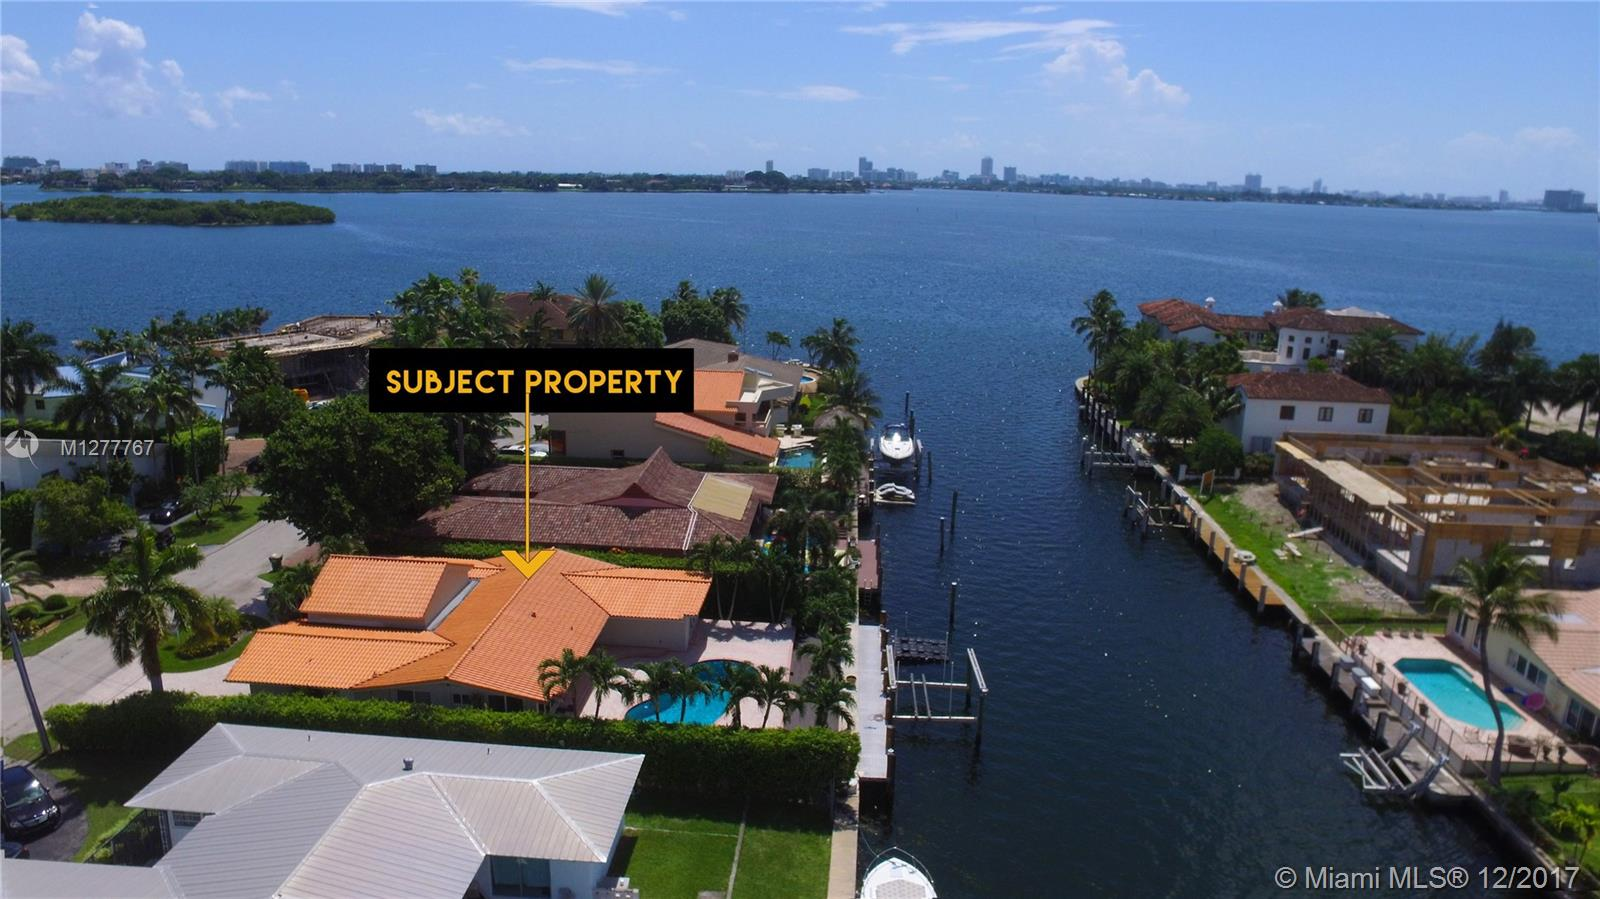 2070 NE 121 RD  For Sale M1277767, FL